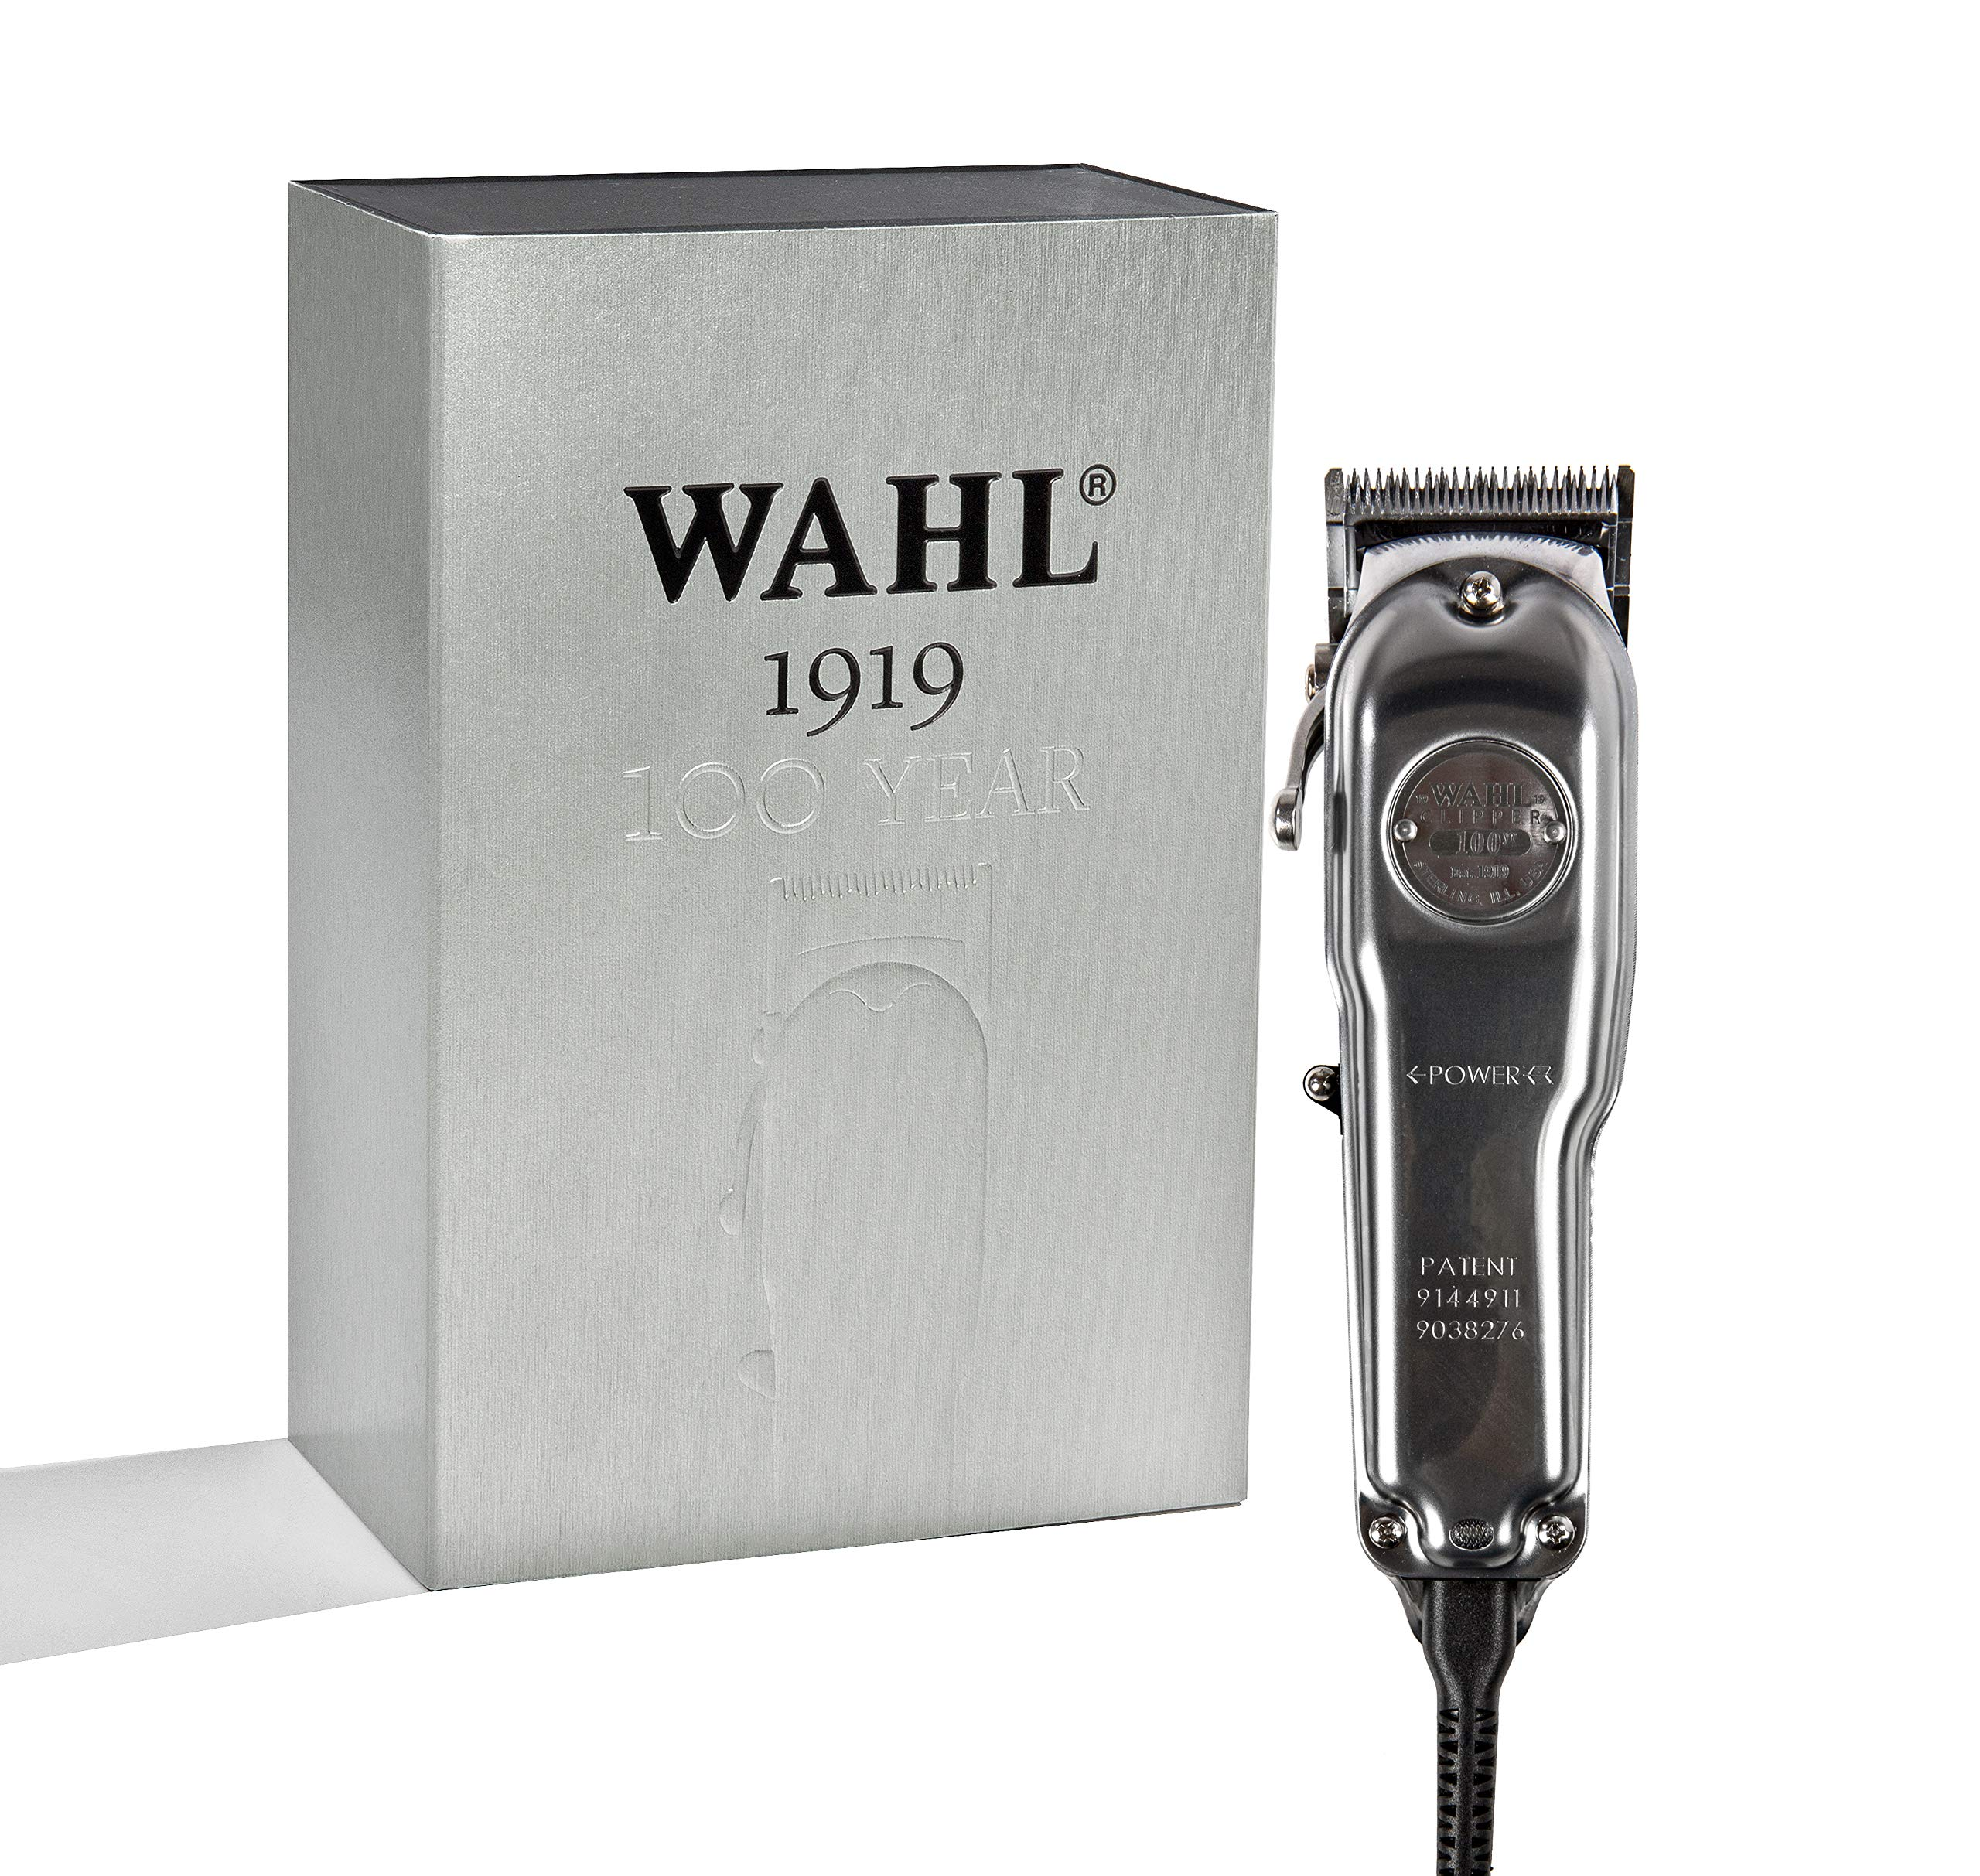 Wahl Professional Limited Edition 100 Year Clipper #81919 - Great for Professional Stylists & Barbers - 100 Years of Tradition - 91N7K1xg8yL - Wahl Professional Limited Edition 100 Year Clipper #81919 – Great for Professional Stylists & Barbers – 100 Years of Tradition